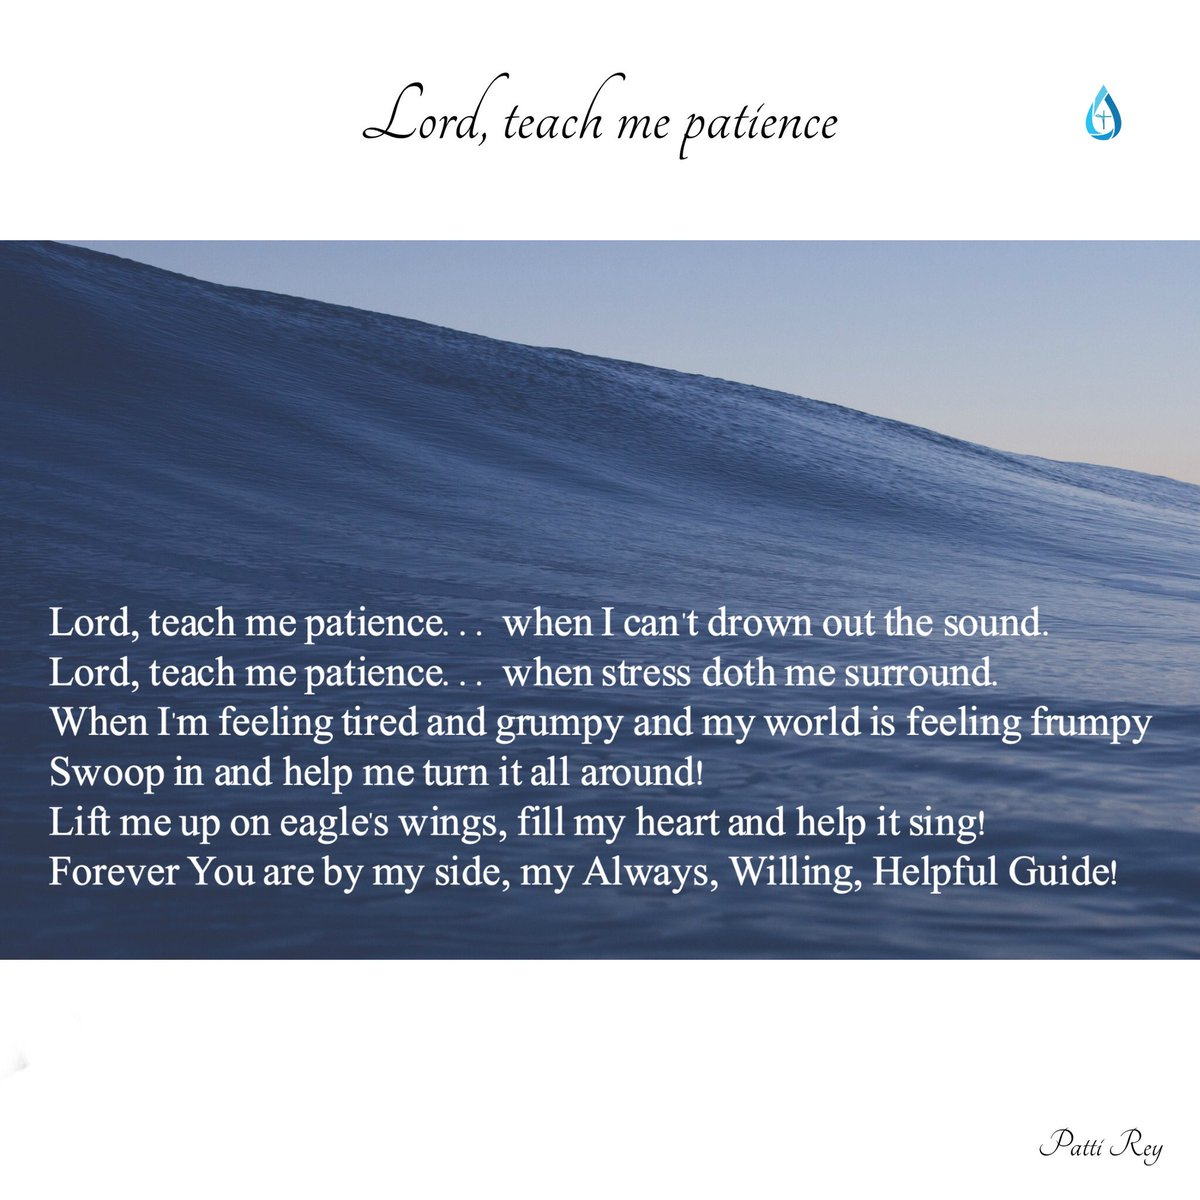 #Lord, teach me #patience Help me turn it all around... #lift me up... #help me #sing #God my #always #willing #helpful #guide